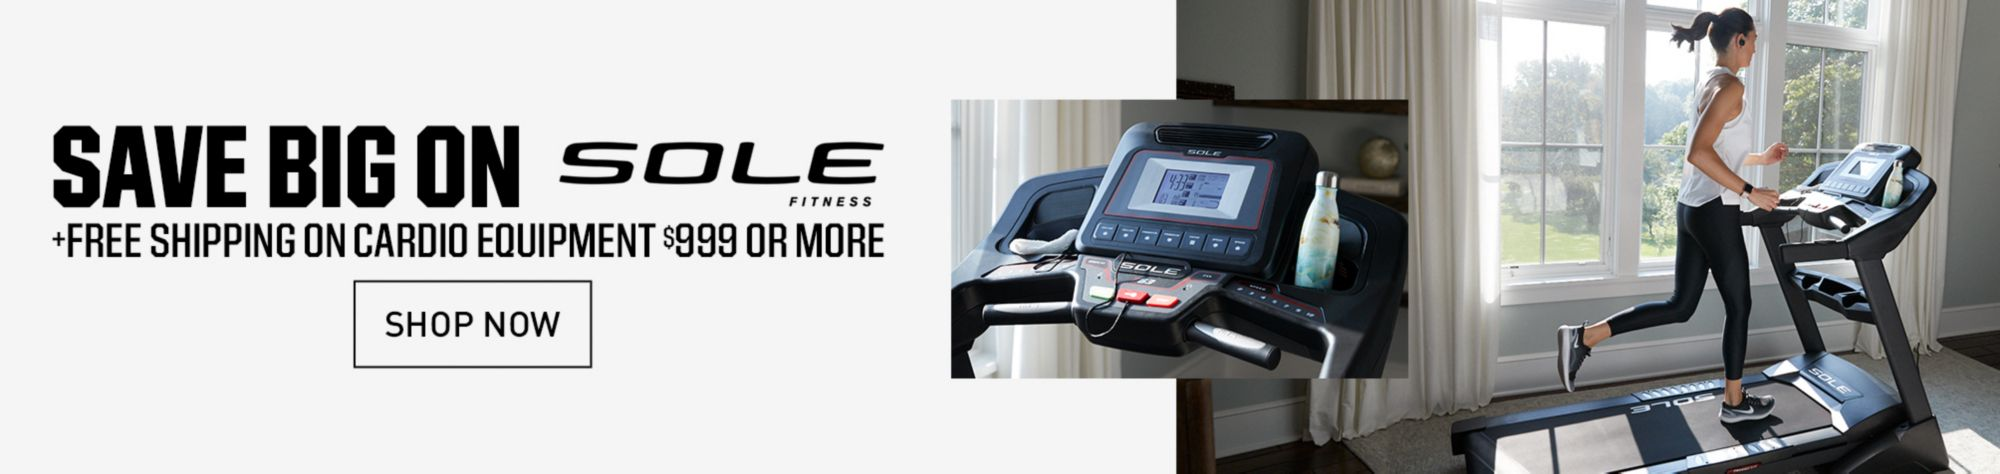 Save on Sole Cardio Equipment